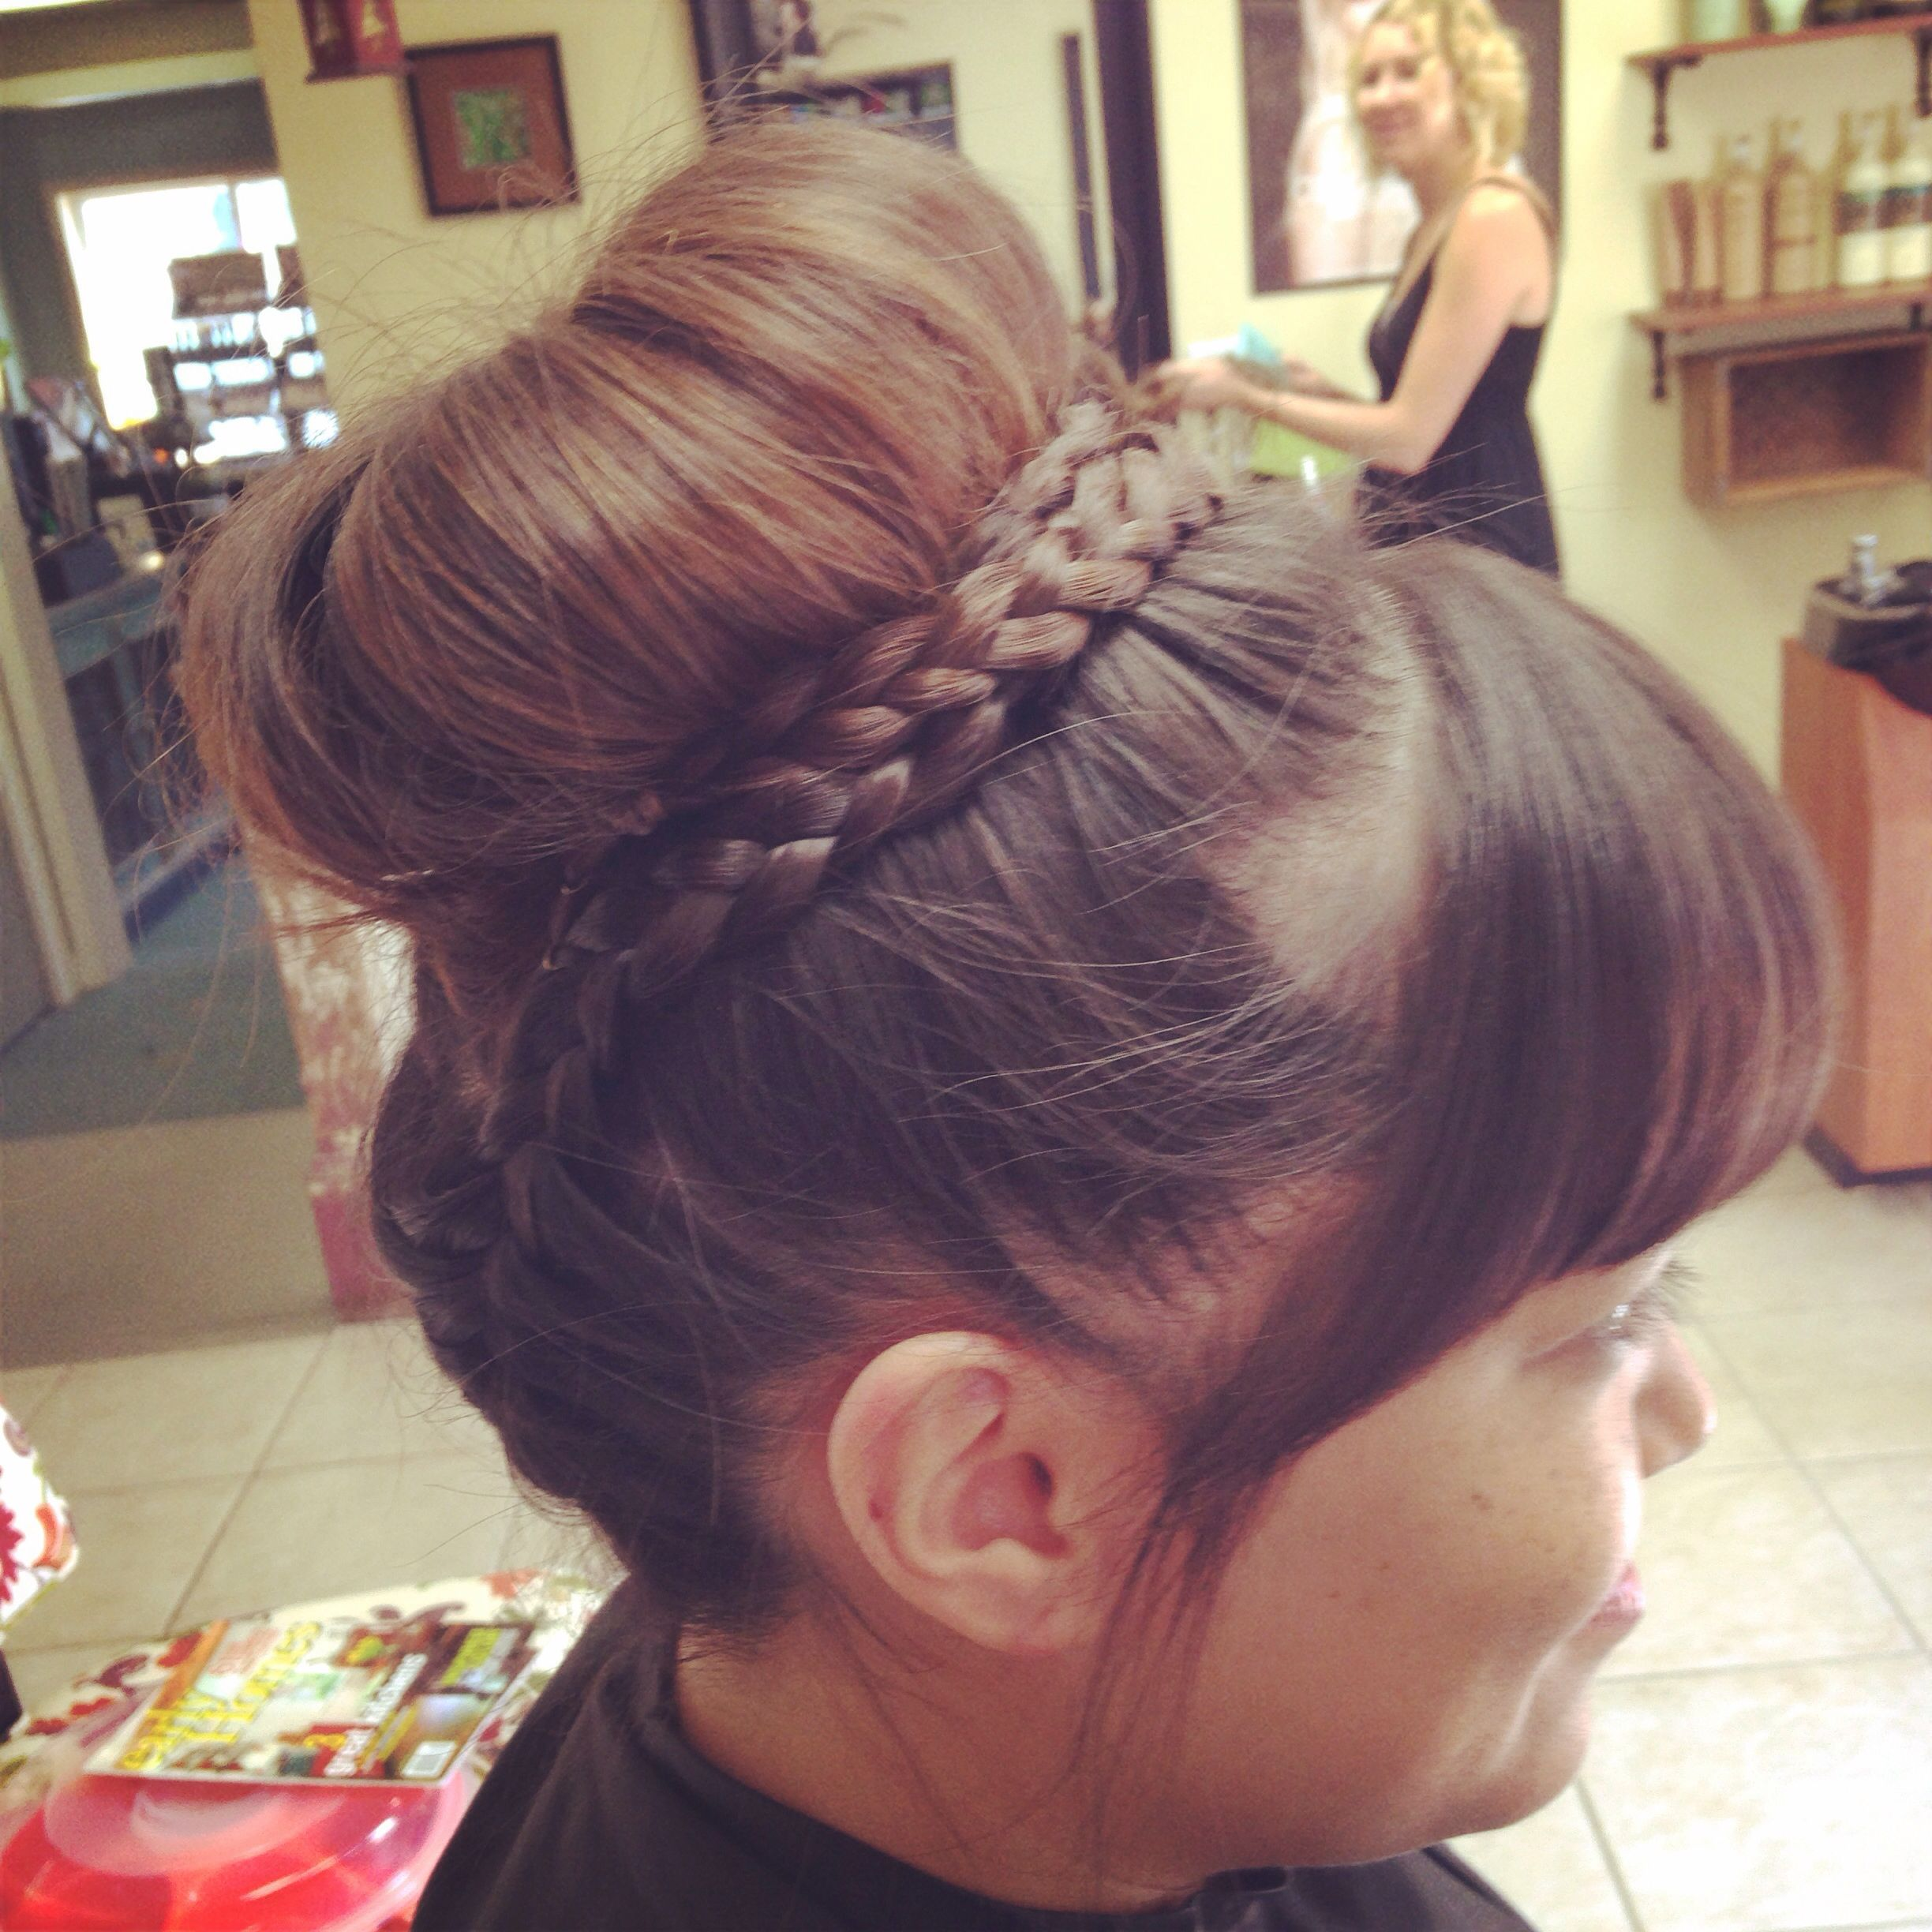 Bun. Updo. Simple. Braids.